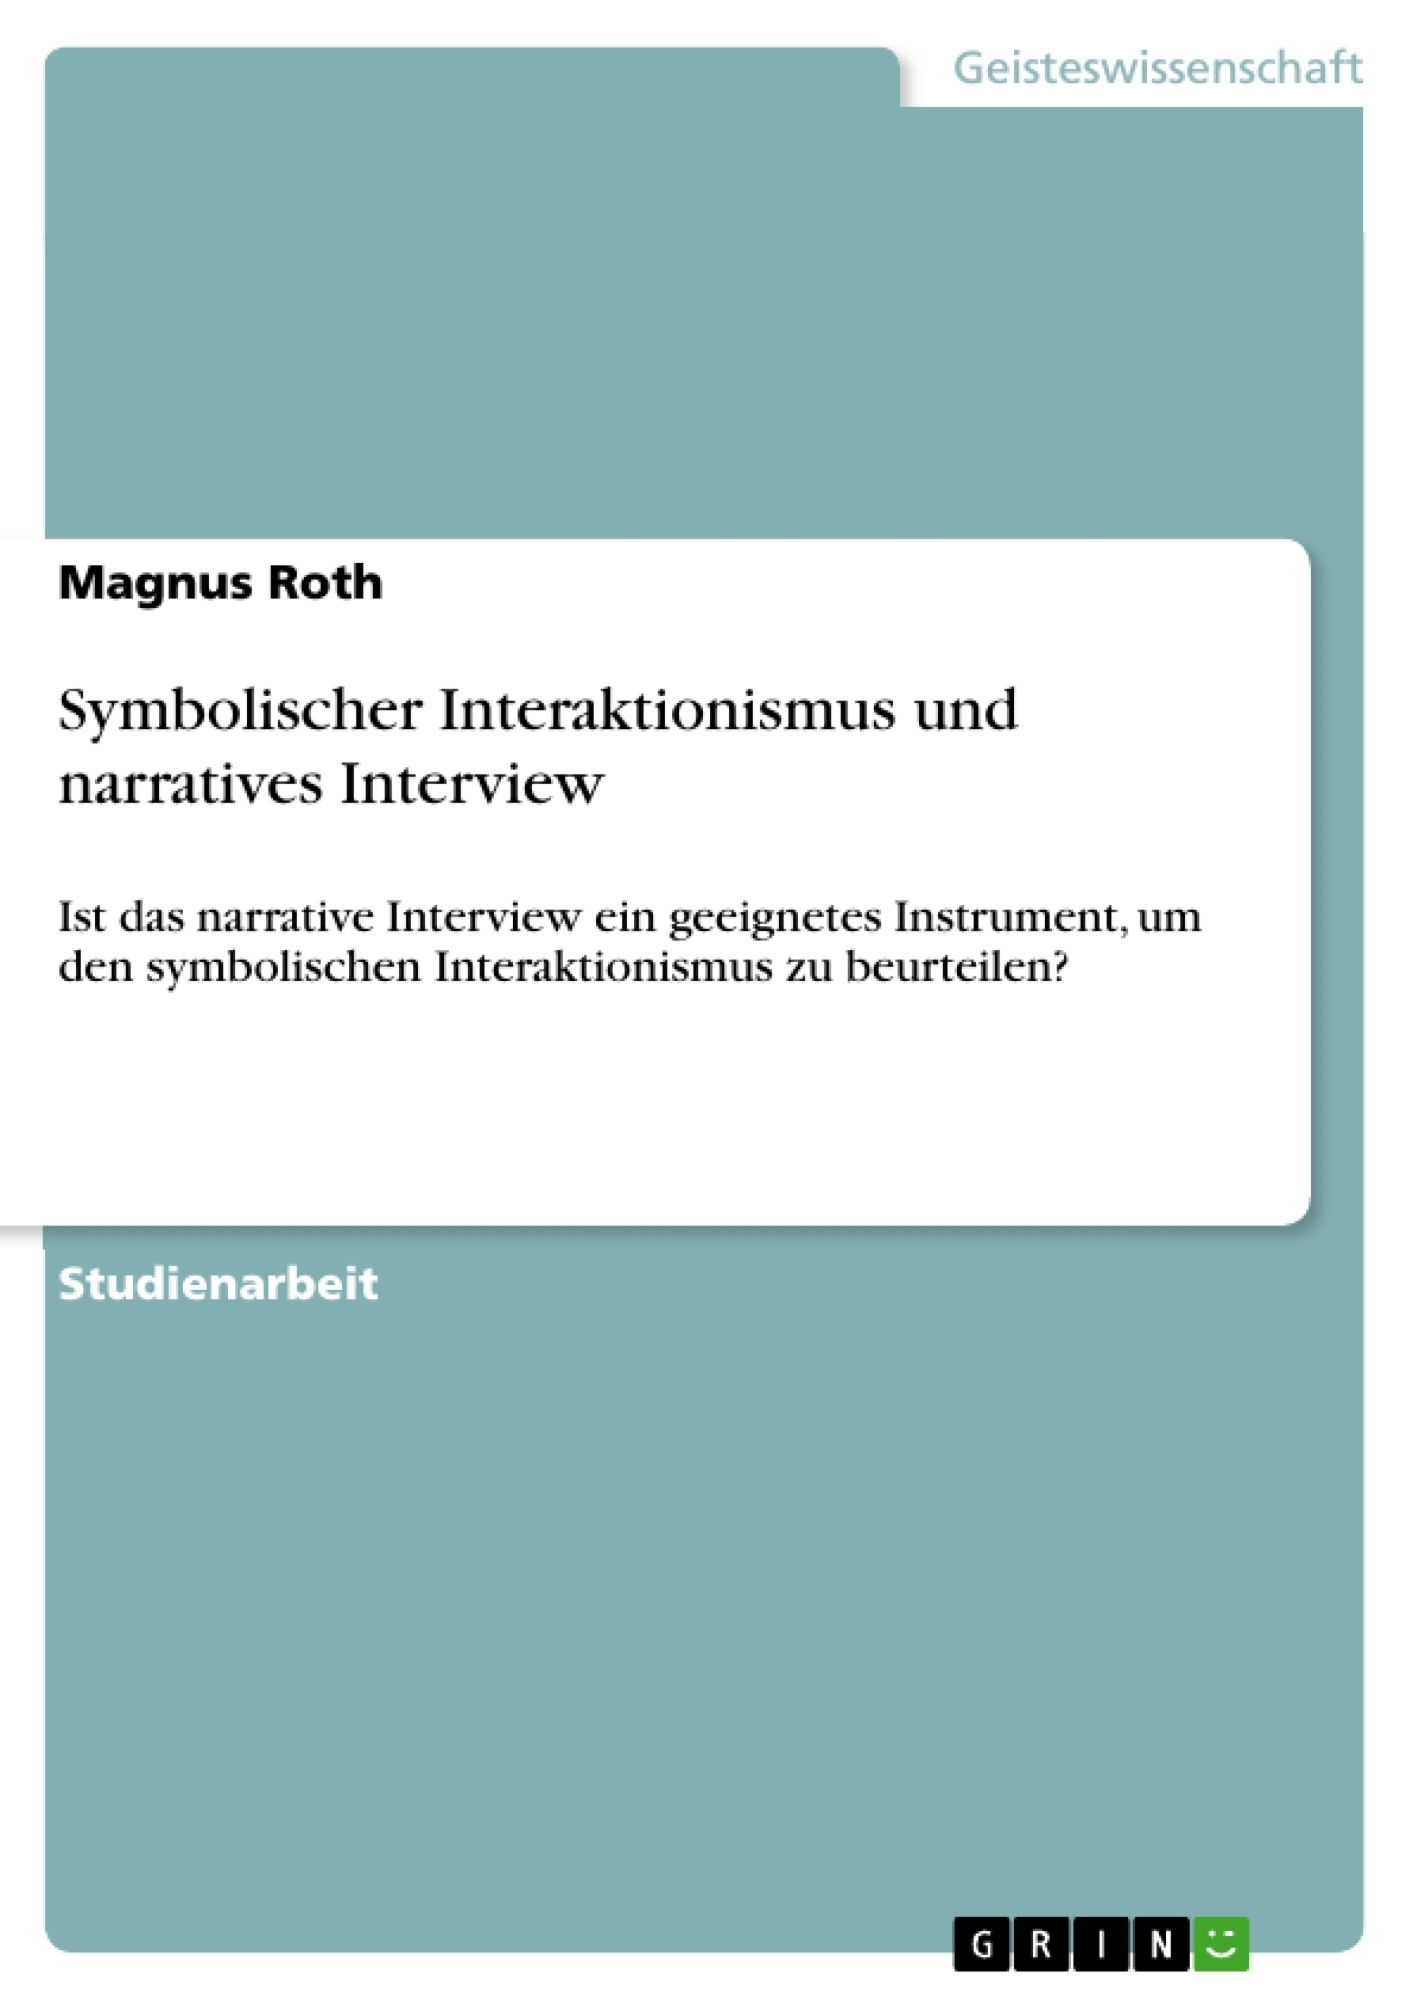 Titel: Symbolischer Interaktionismus und narratives Interview